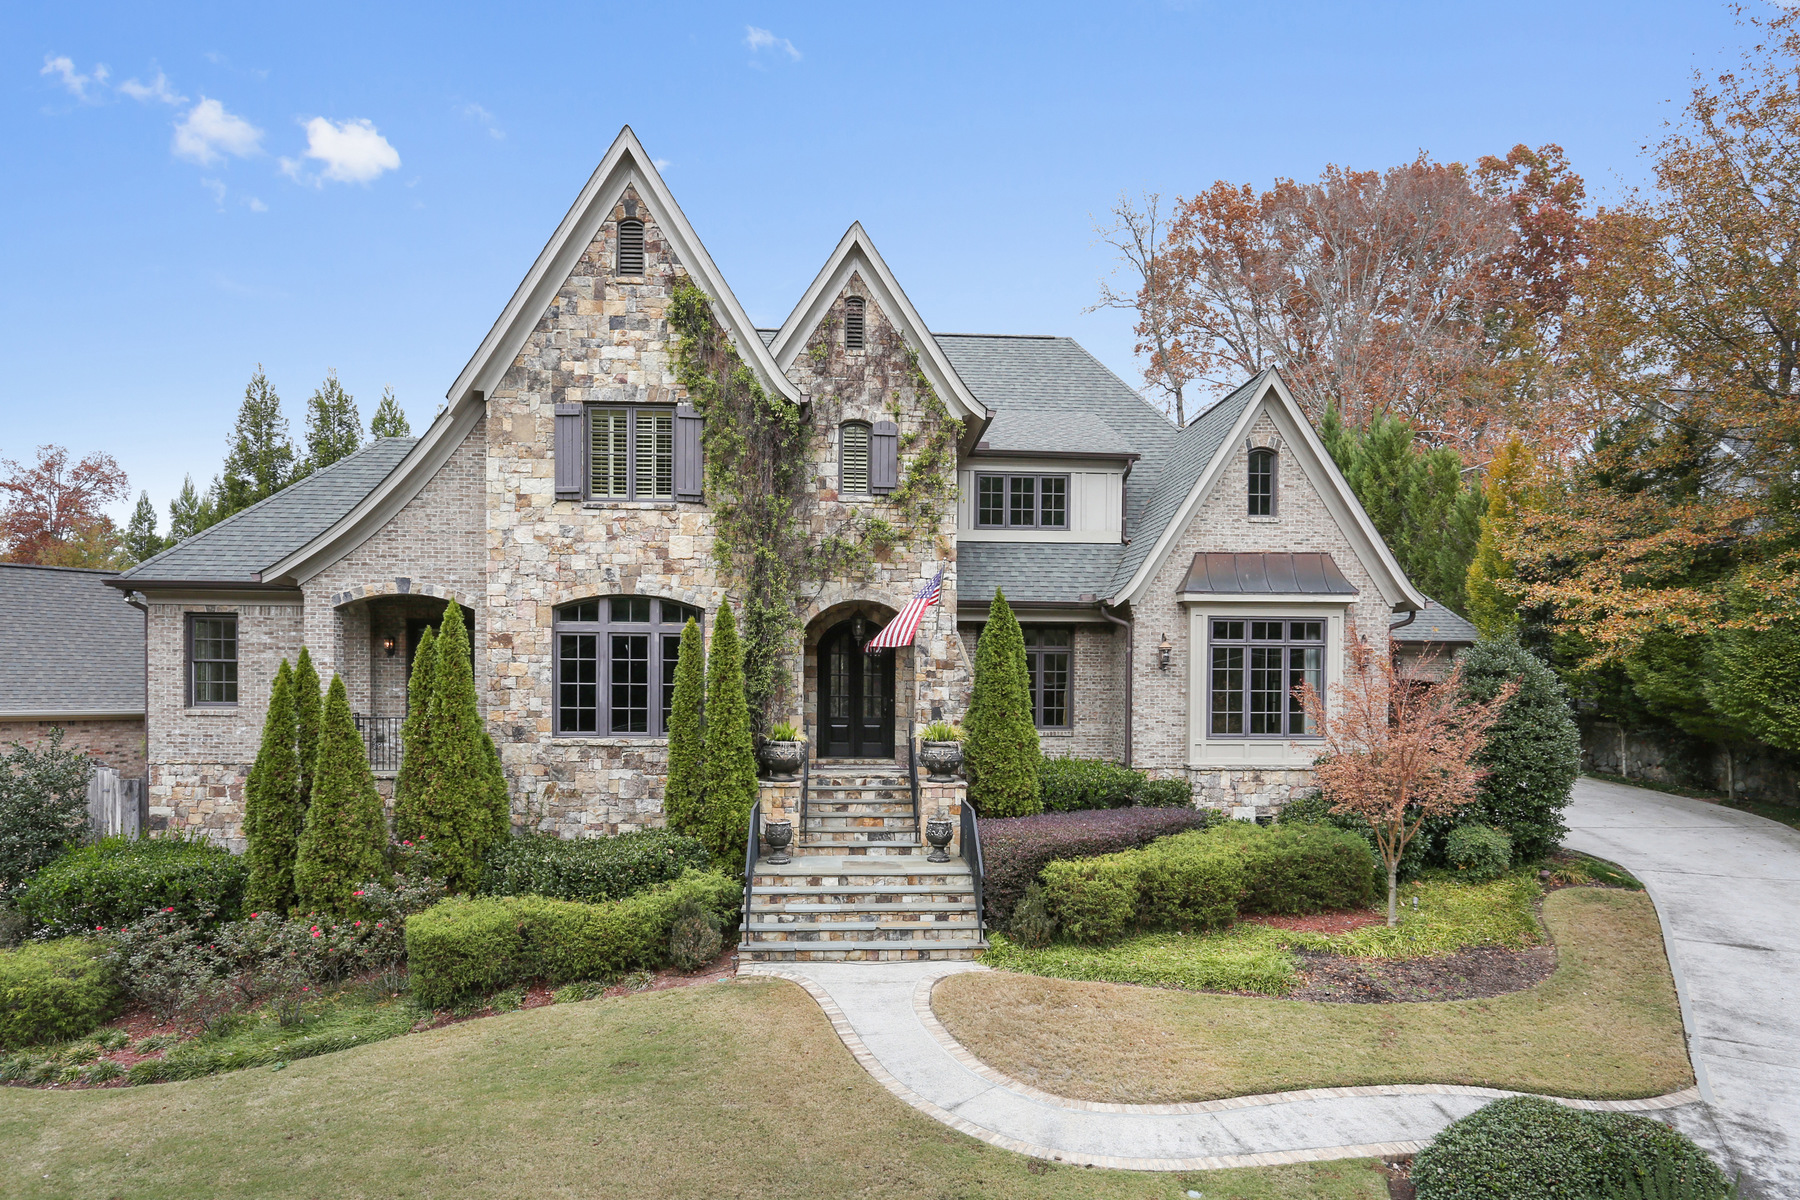 Single Family Home for Sale at Stunning European Manor 14 Laurel Drive NE Atlanta, Georgia 30342 United States